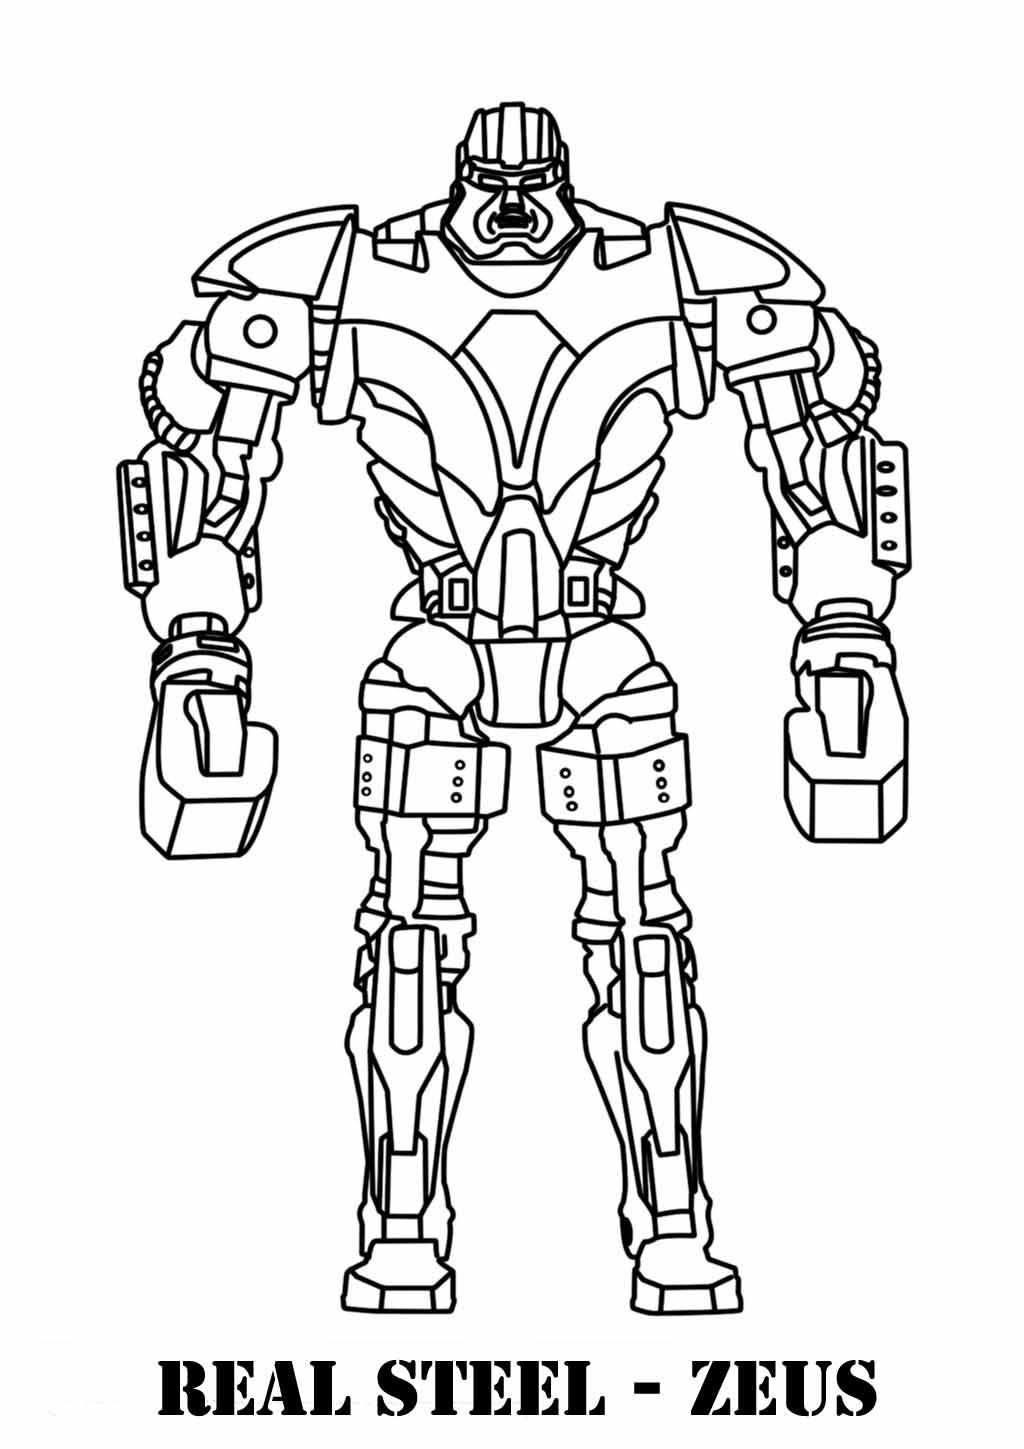 Kleurplaten Robot Boy.Real Steel Robots Coloring Pages For Kids Gabriel S 5th Birthday